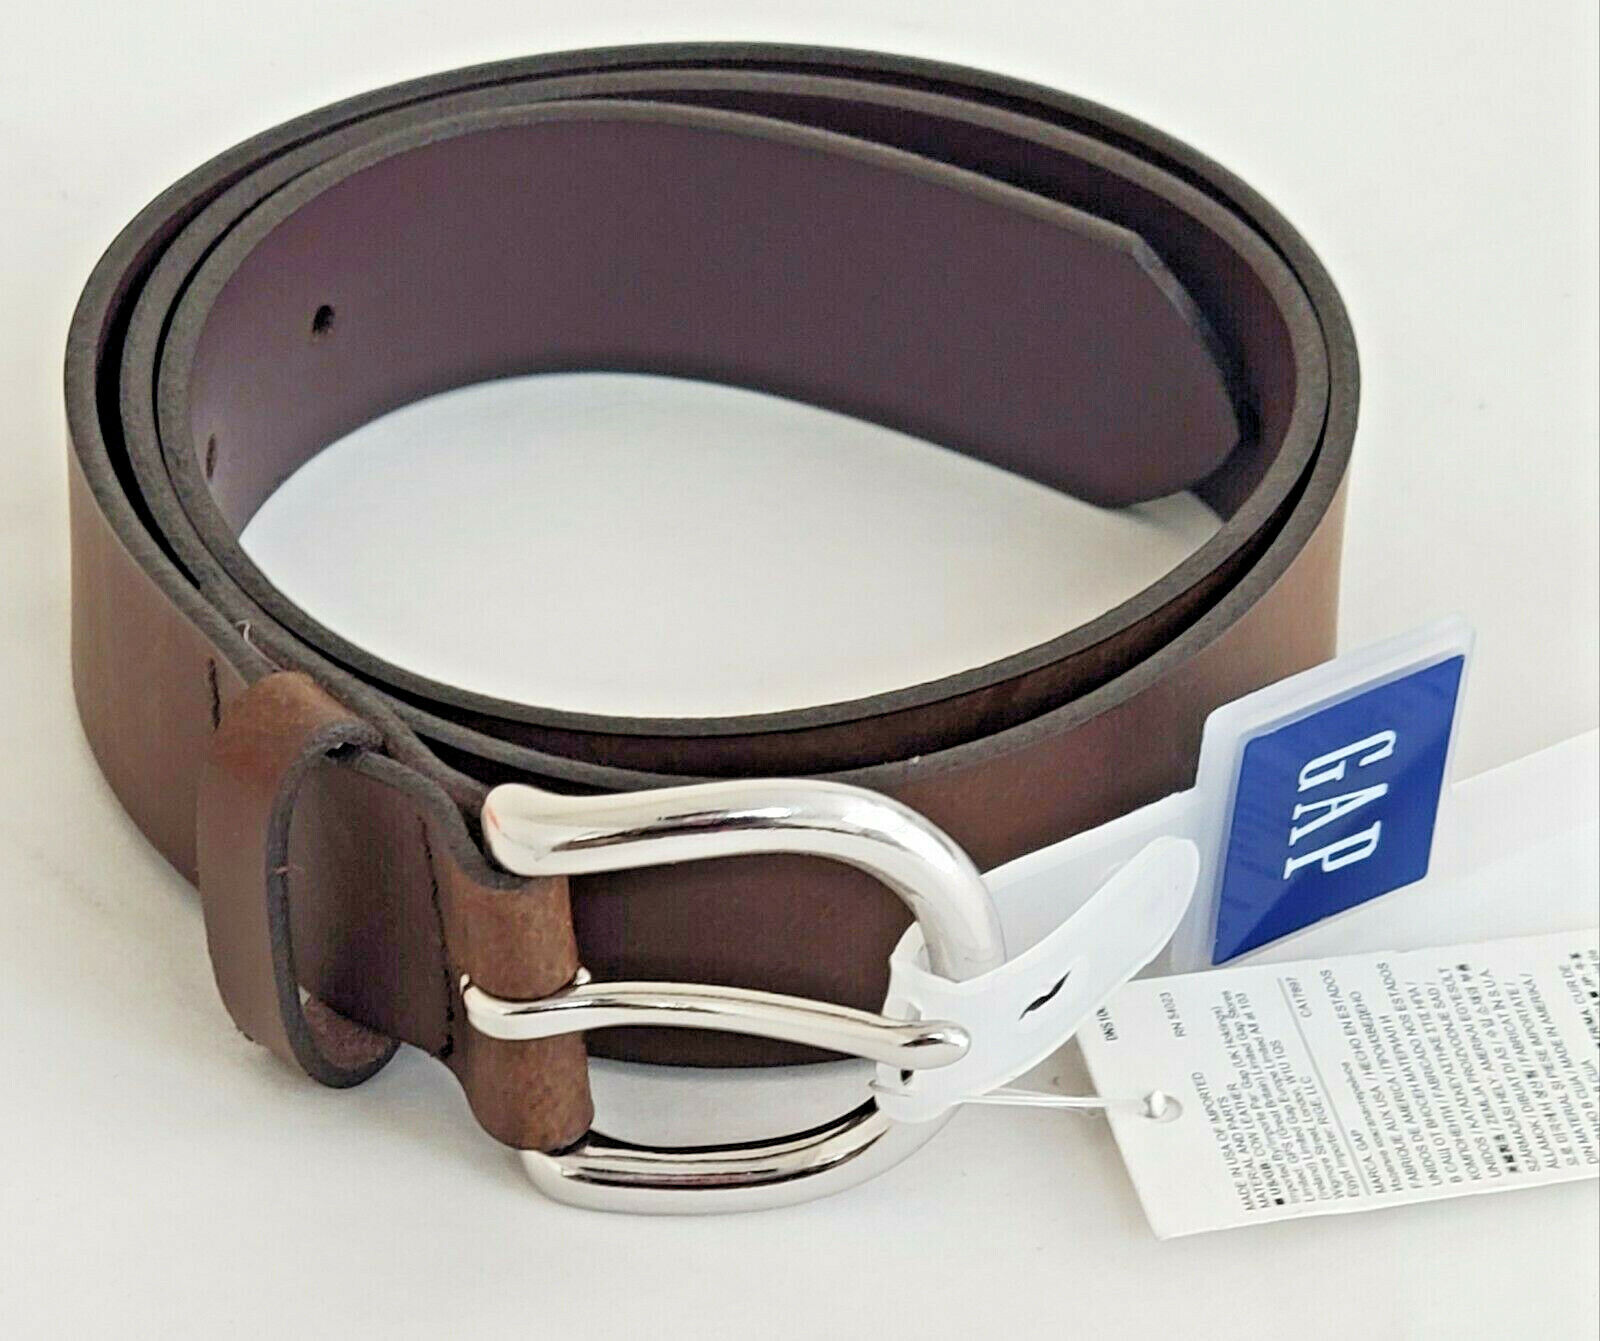 New GAP Women's Classic Belt Brown Silver Buckle Adjustable Cow Leather MEDIUM Belts